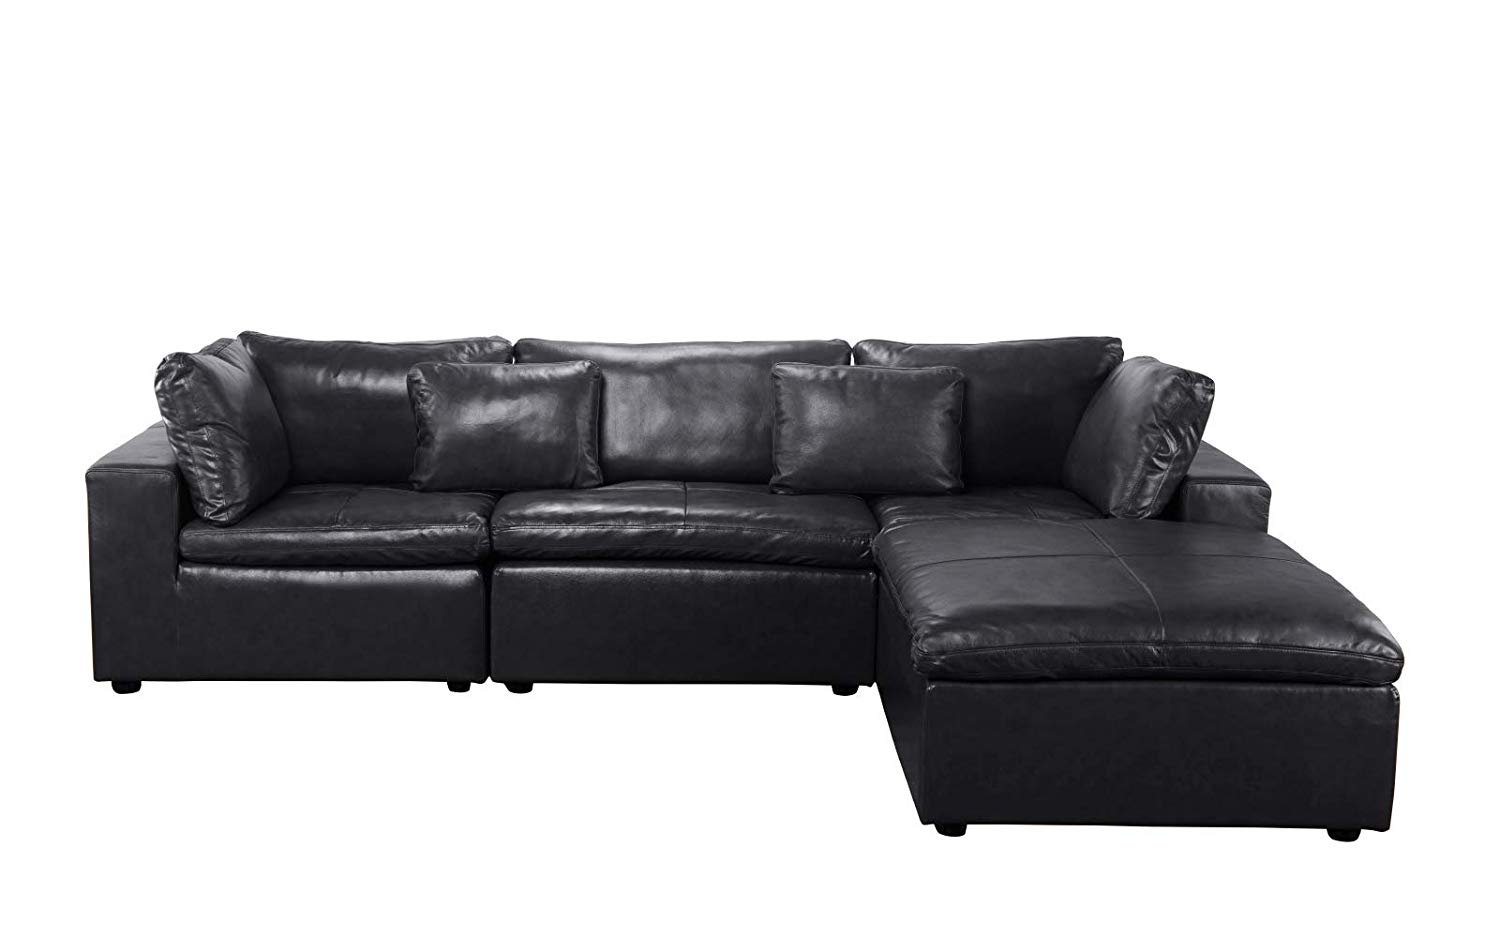 large sectional sofa leather l shape couch with wide chaise black 662187615288 ebay. Black Bedroom Furniture Sets. Home Design Ideas